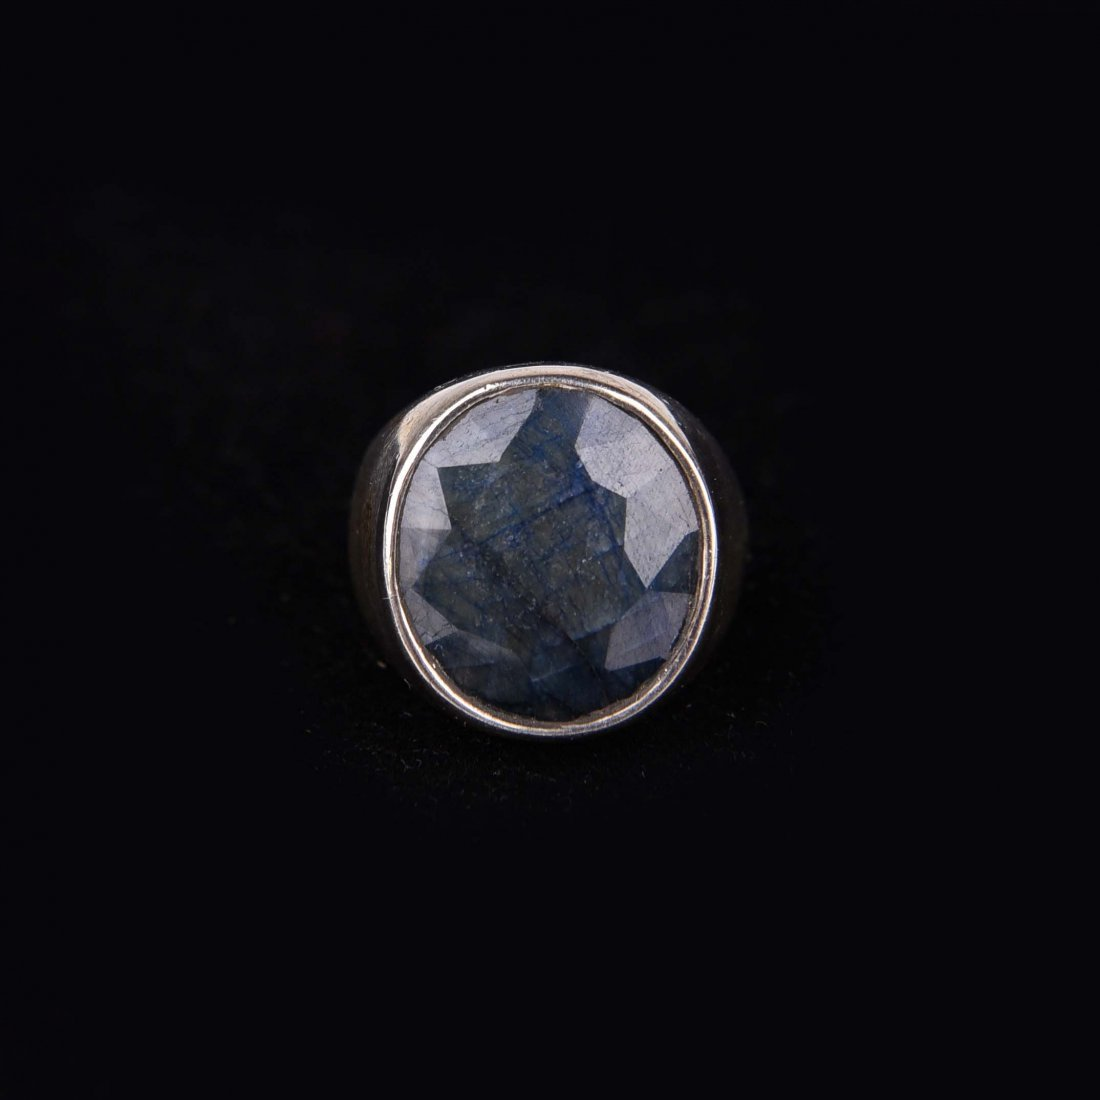 SILVER RING WITH FACETED DRUZY OR AGATE